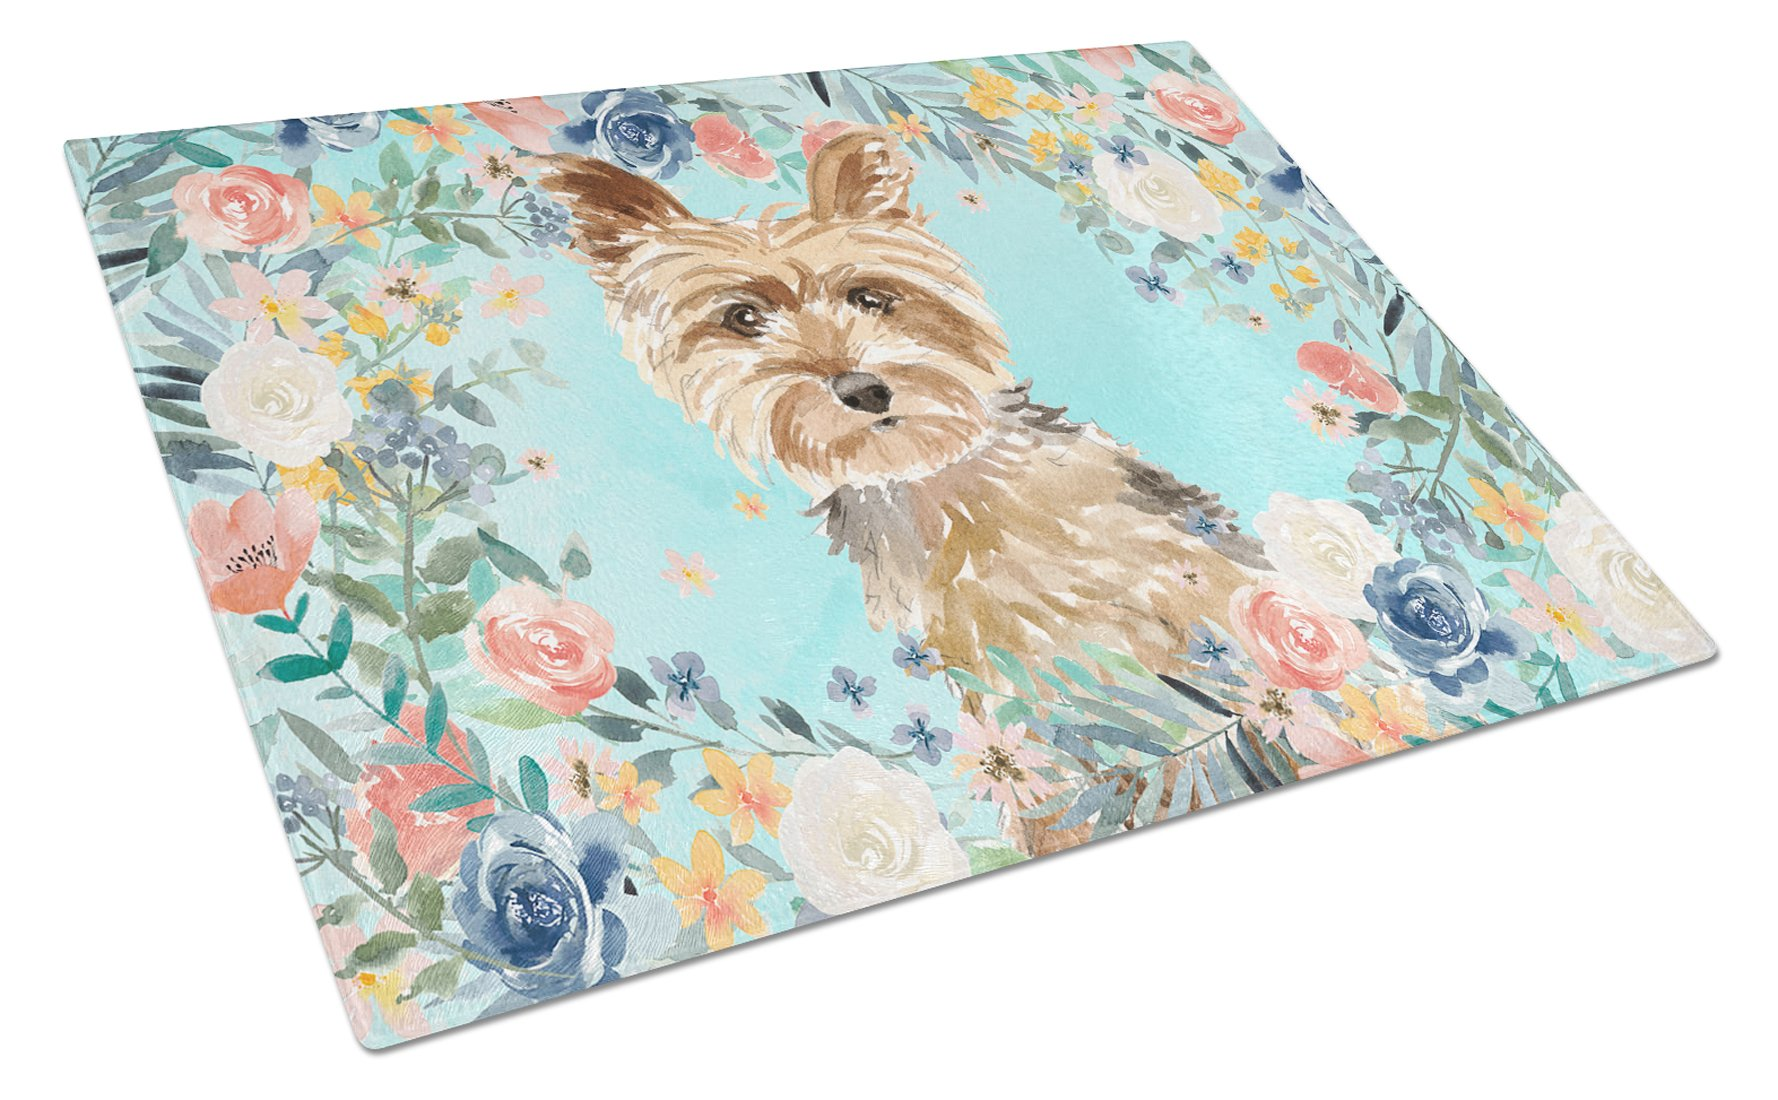 Yorkie Glass Cutting Board Large CK3401LCB by Caroline's Treasures